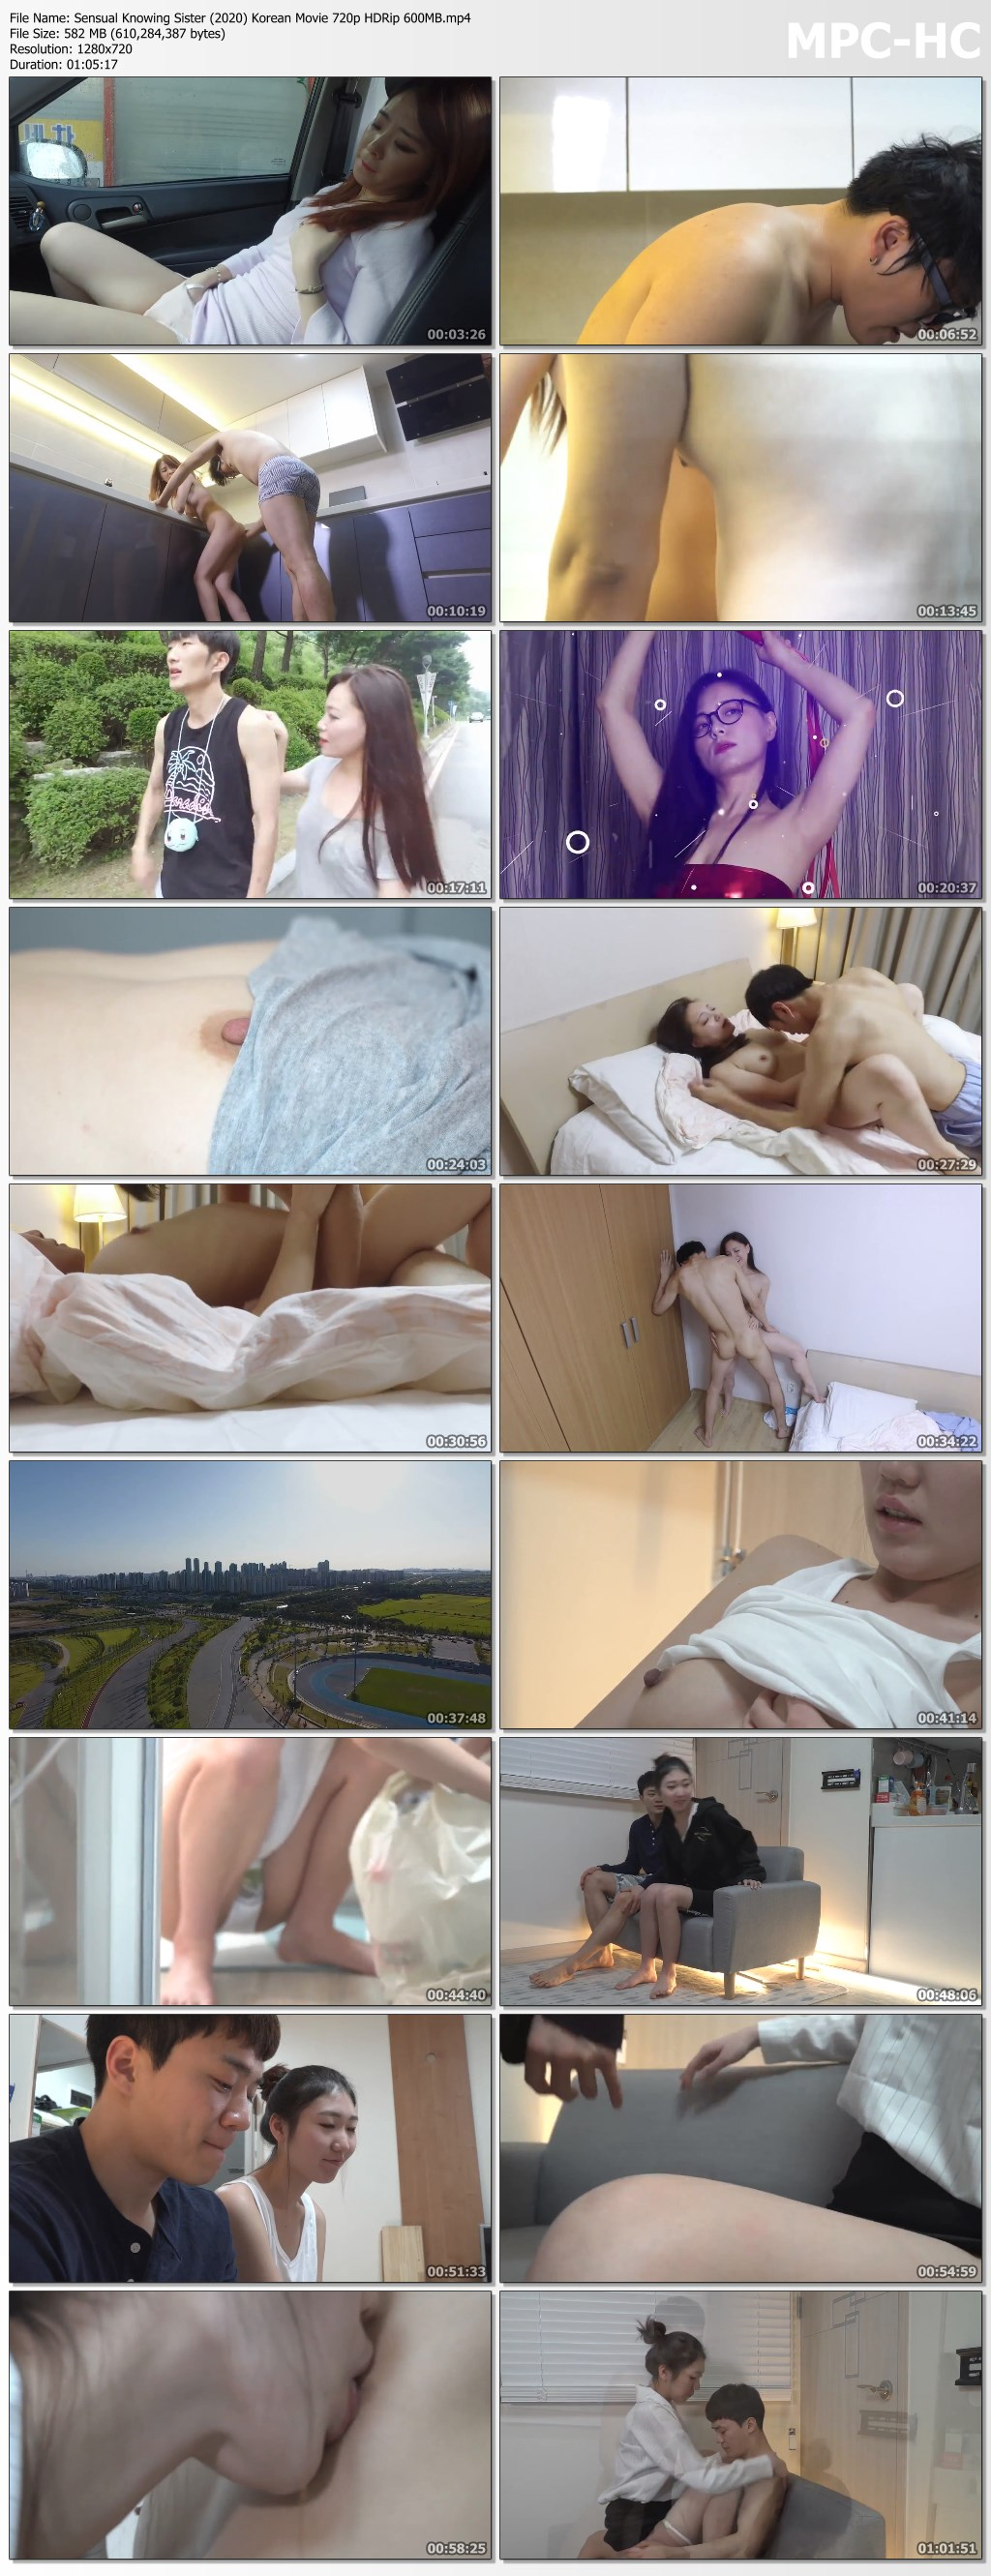 SensualKnowingSister2020KoreanMovie720pHDRip600MB.mp4_thumbs81aaf.jpg